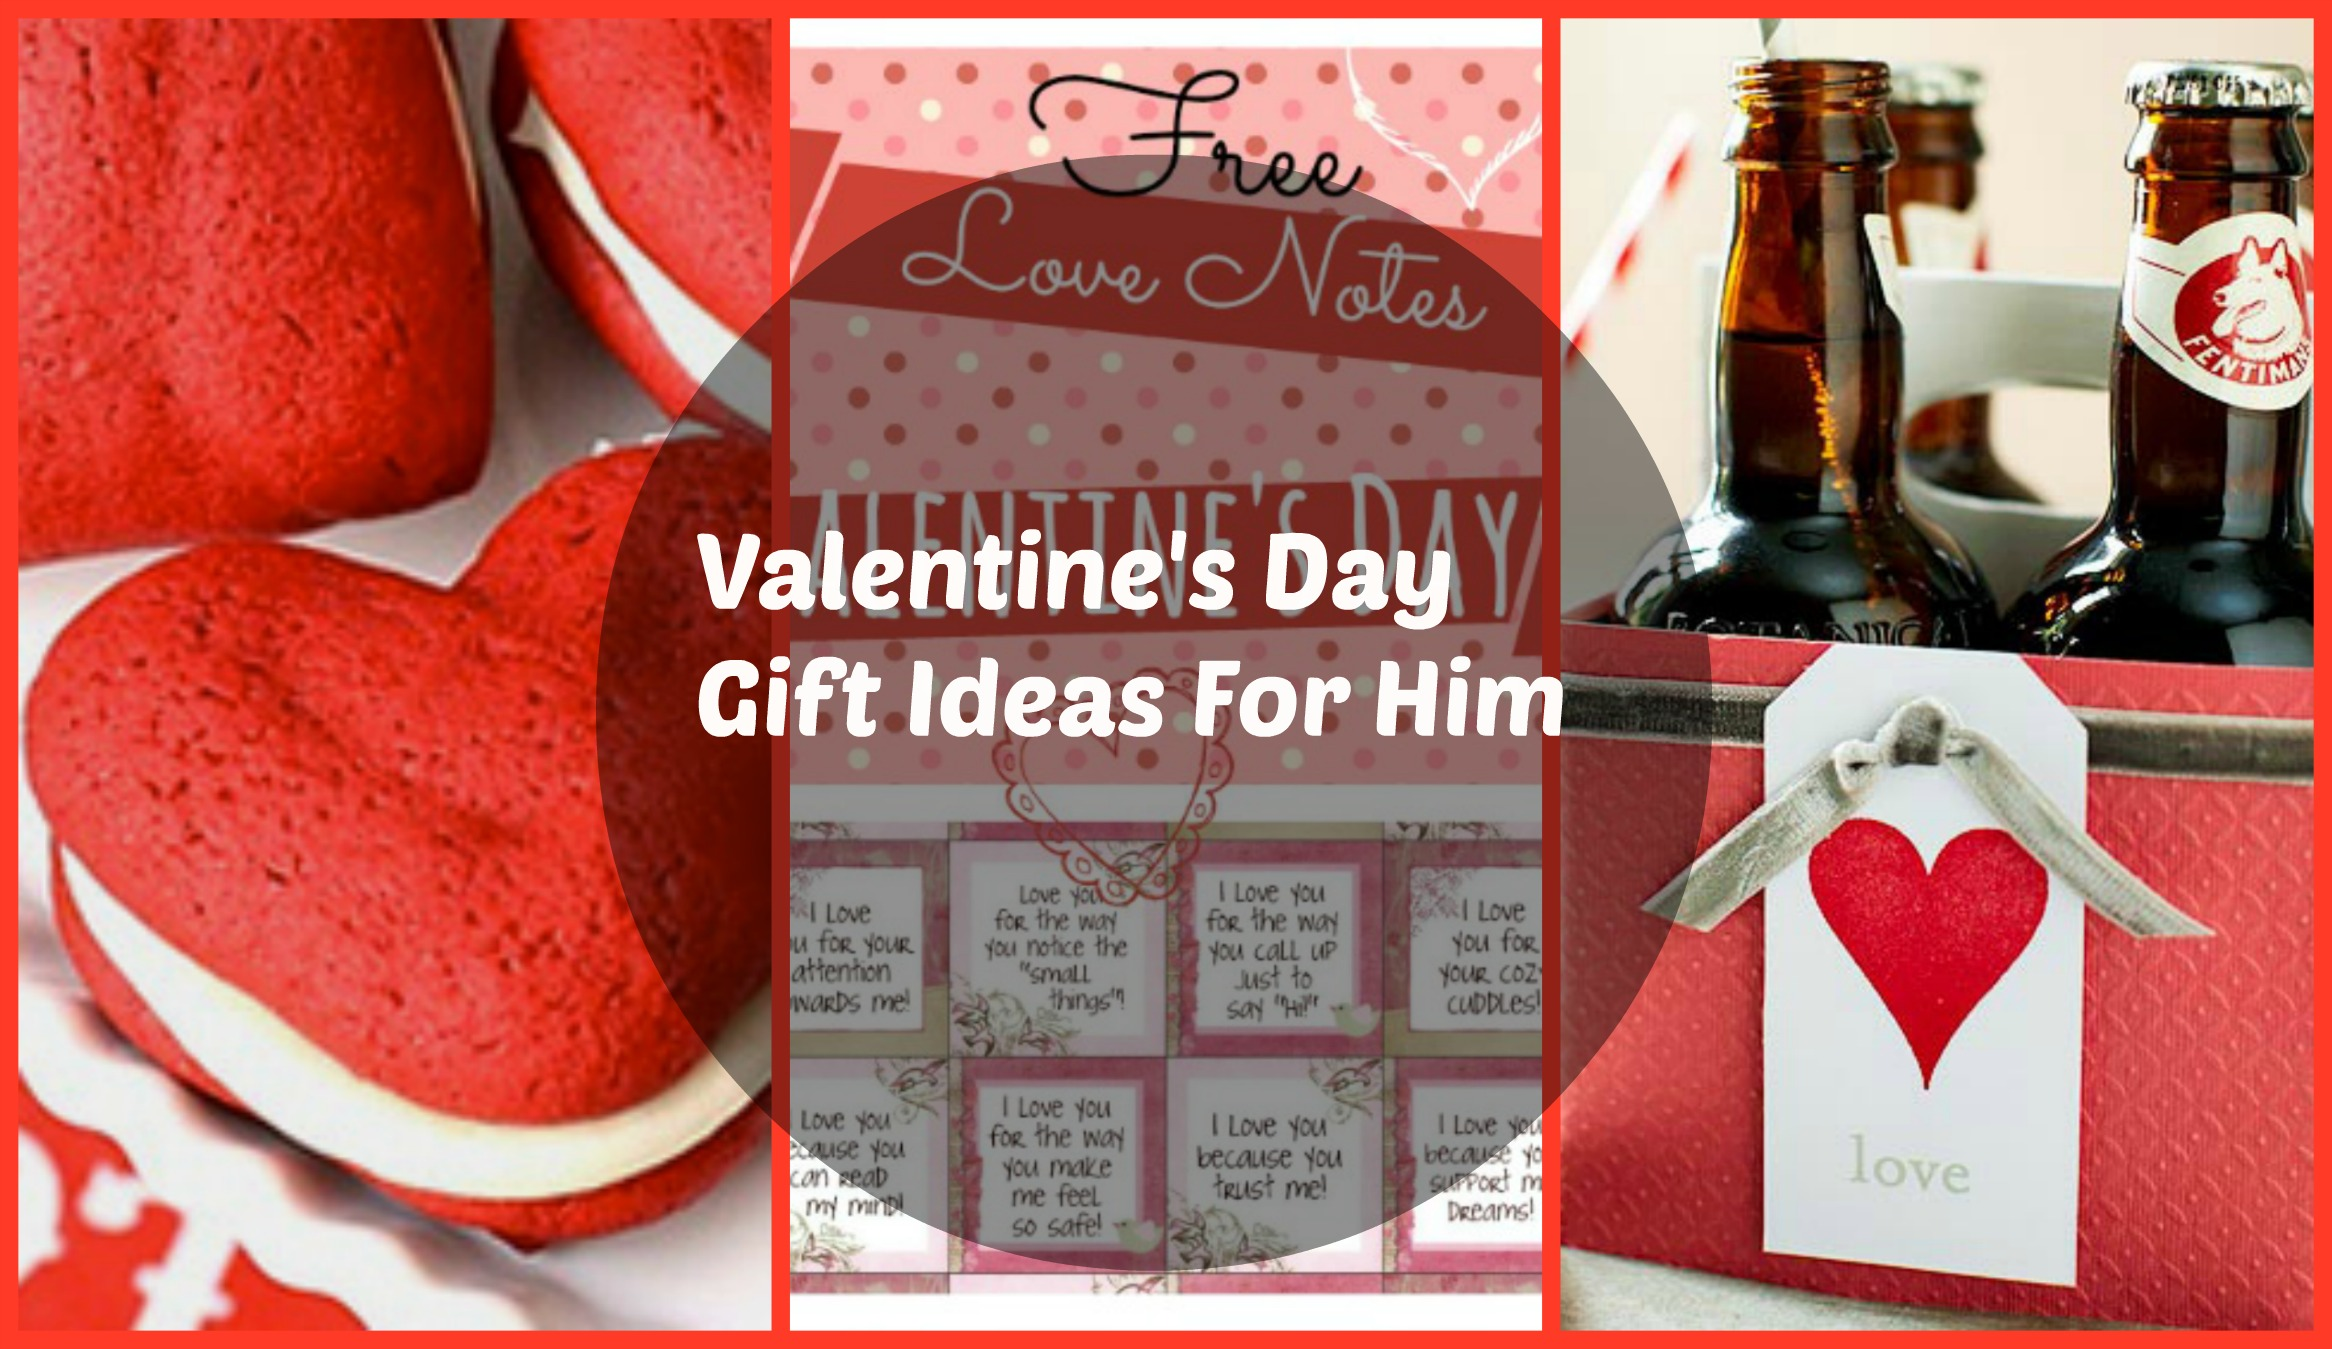 Valentine 39 s gift ideas for him archives fashion trend seeker for Valentines day gifts for him ideas